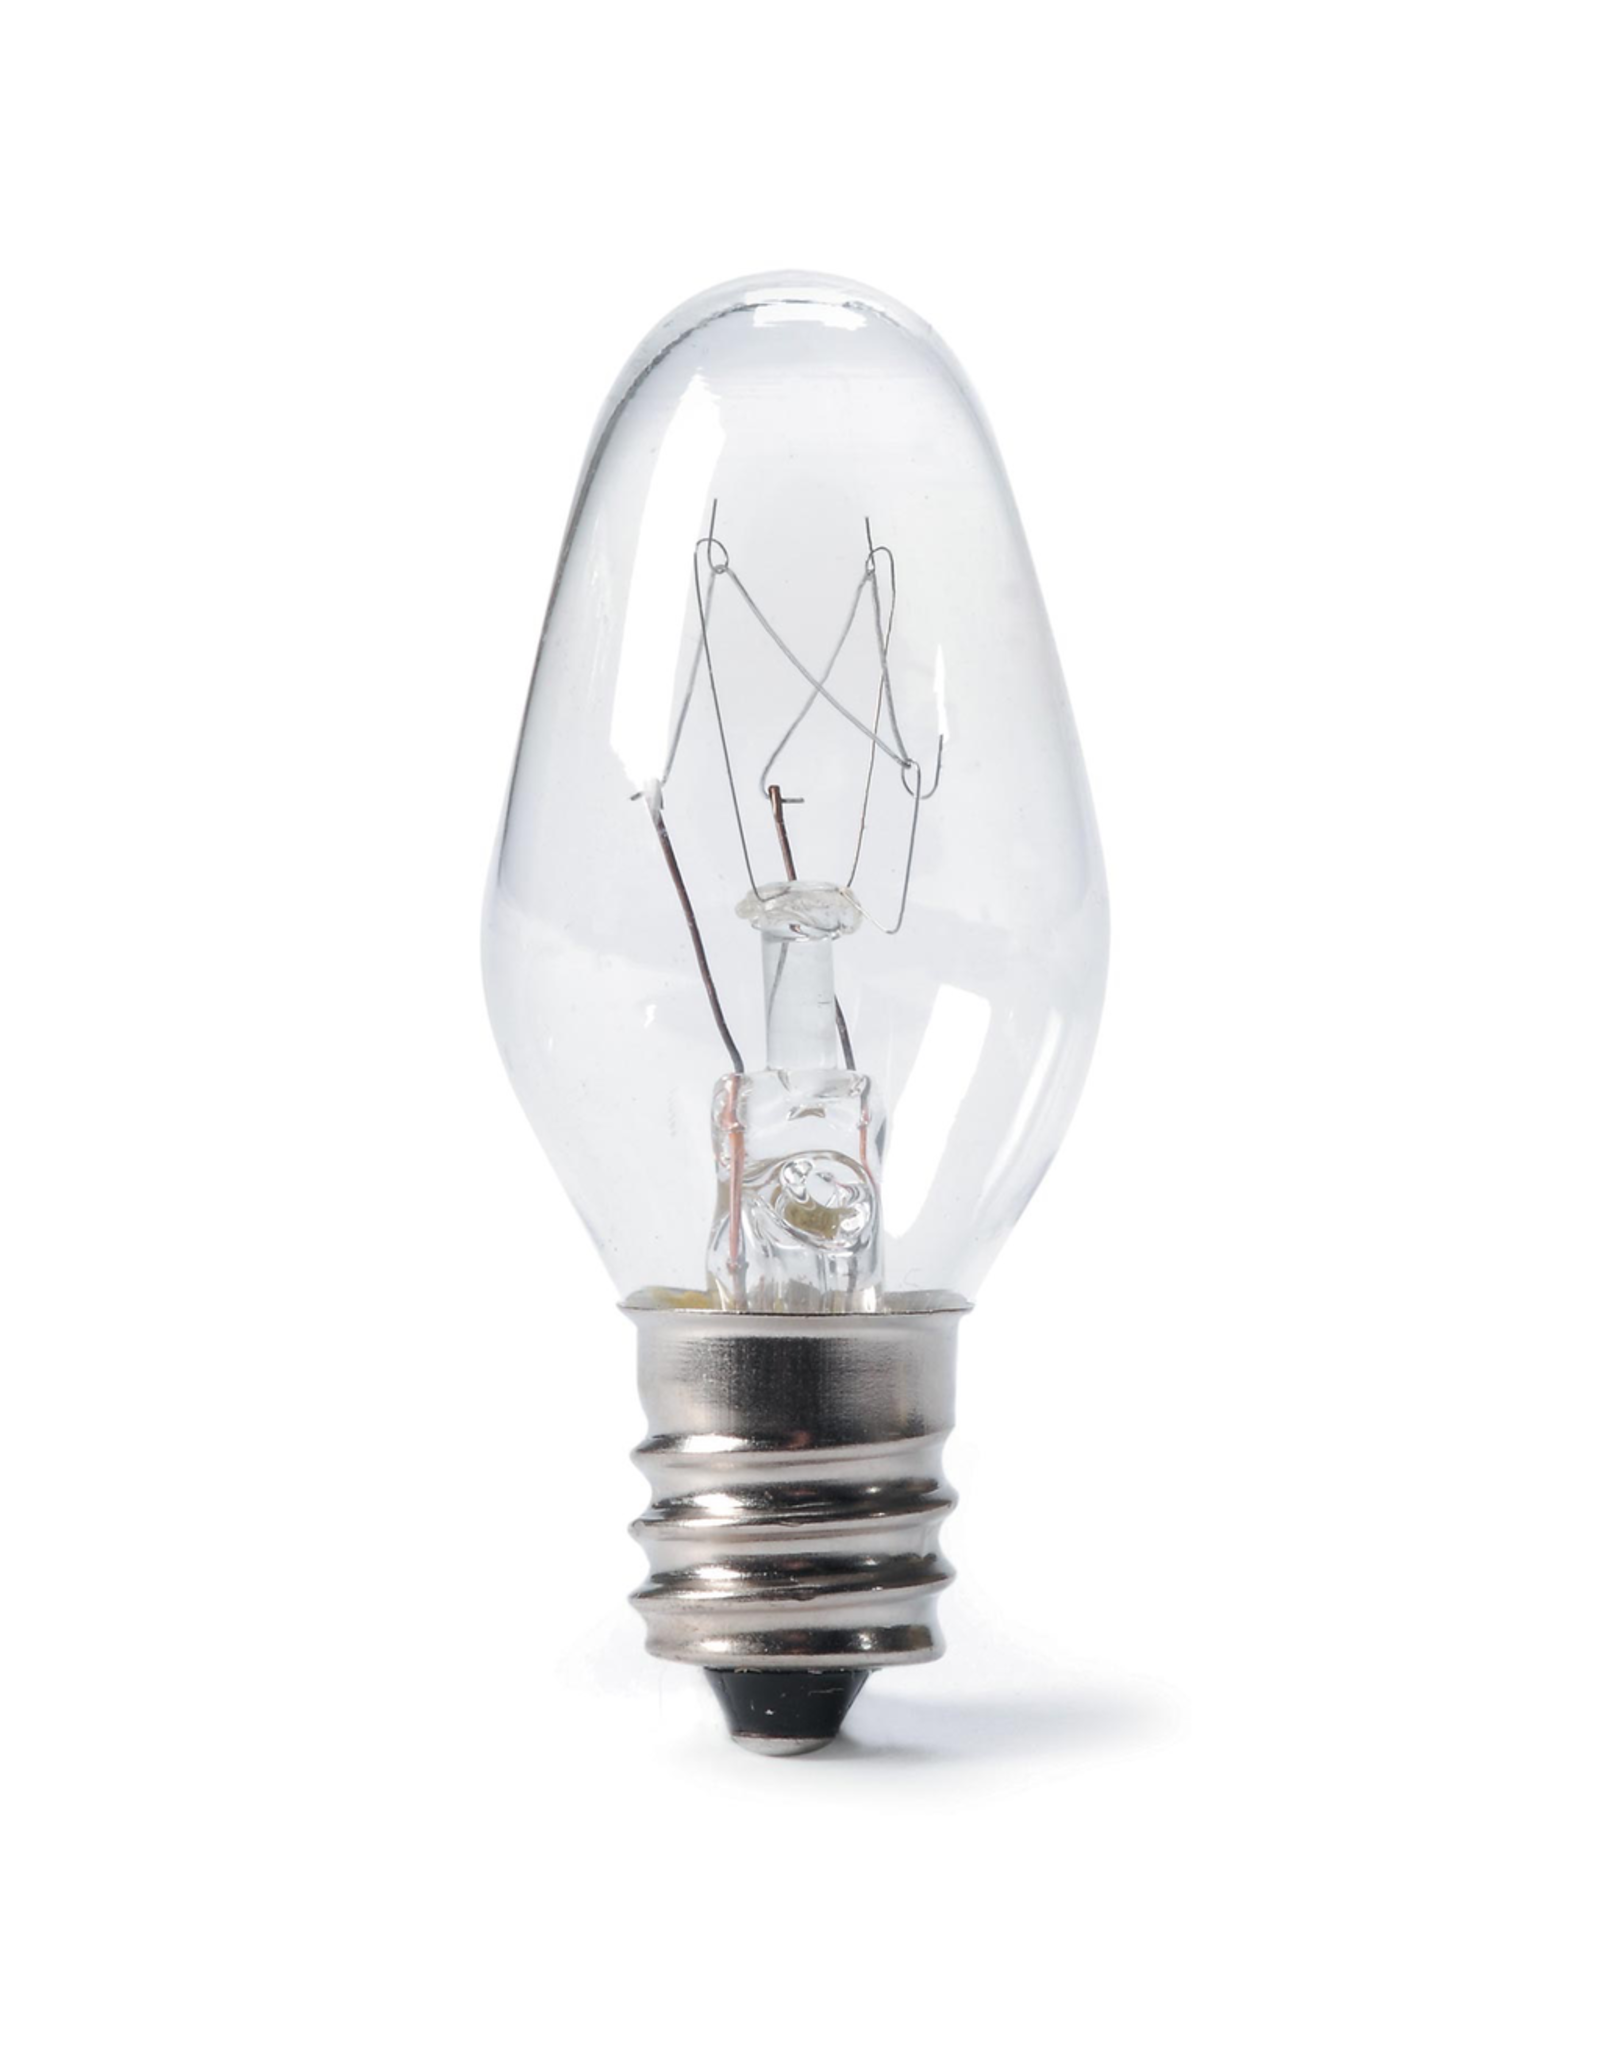 Darice 15 Watt Replacement Bulb